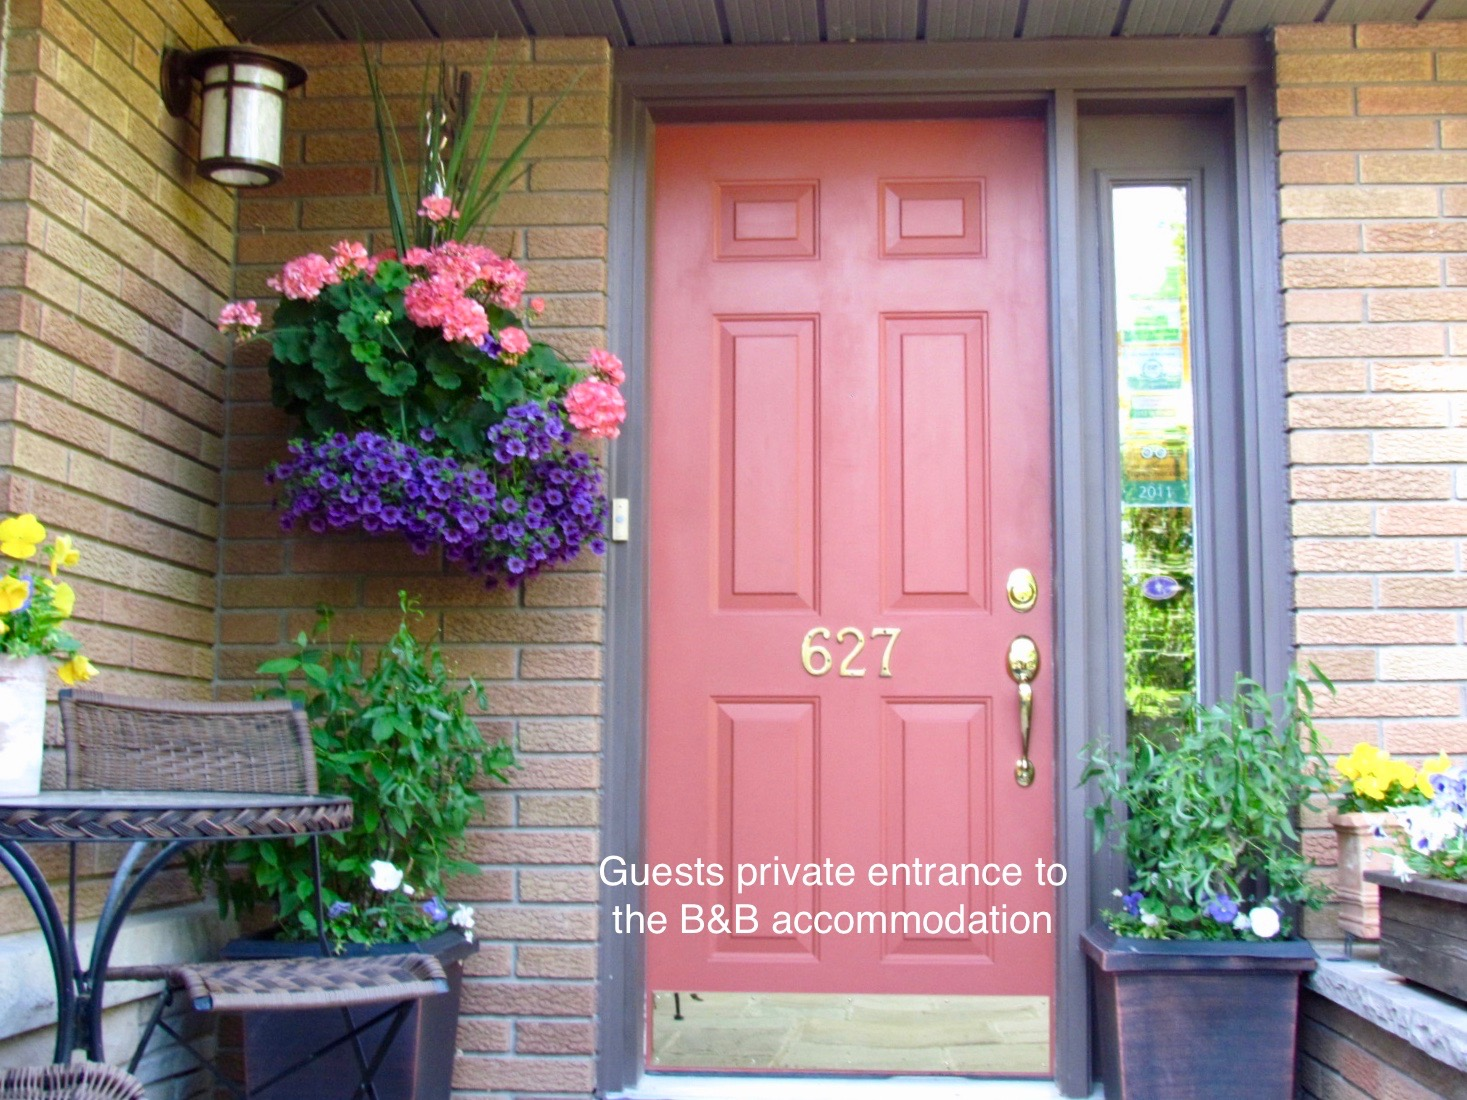 627 on king front door red welcome bnb b&b